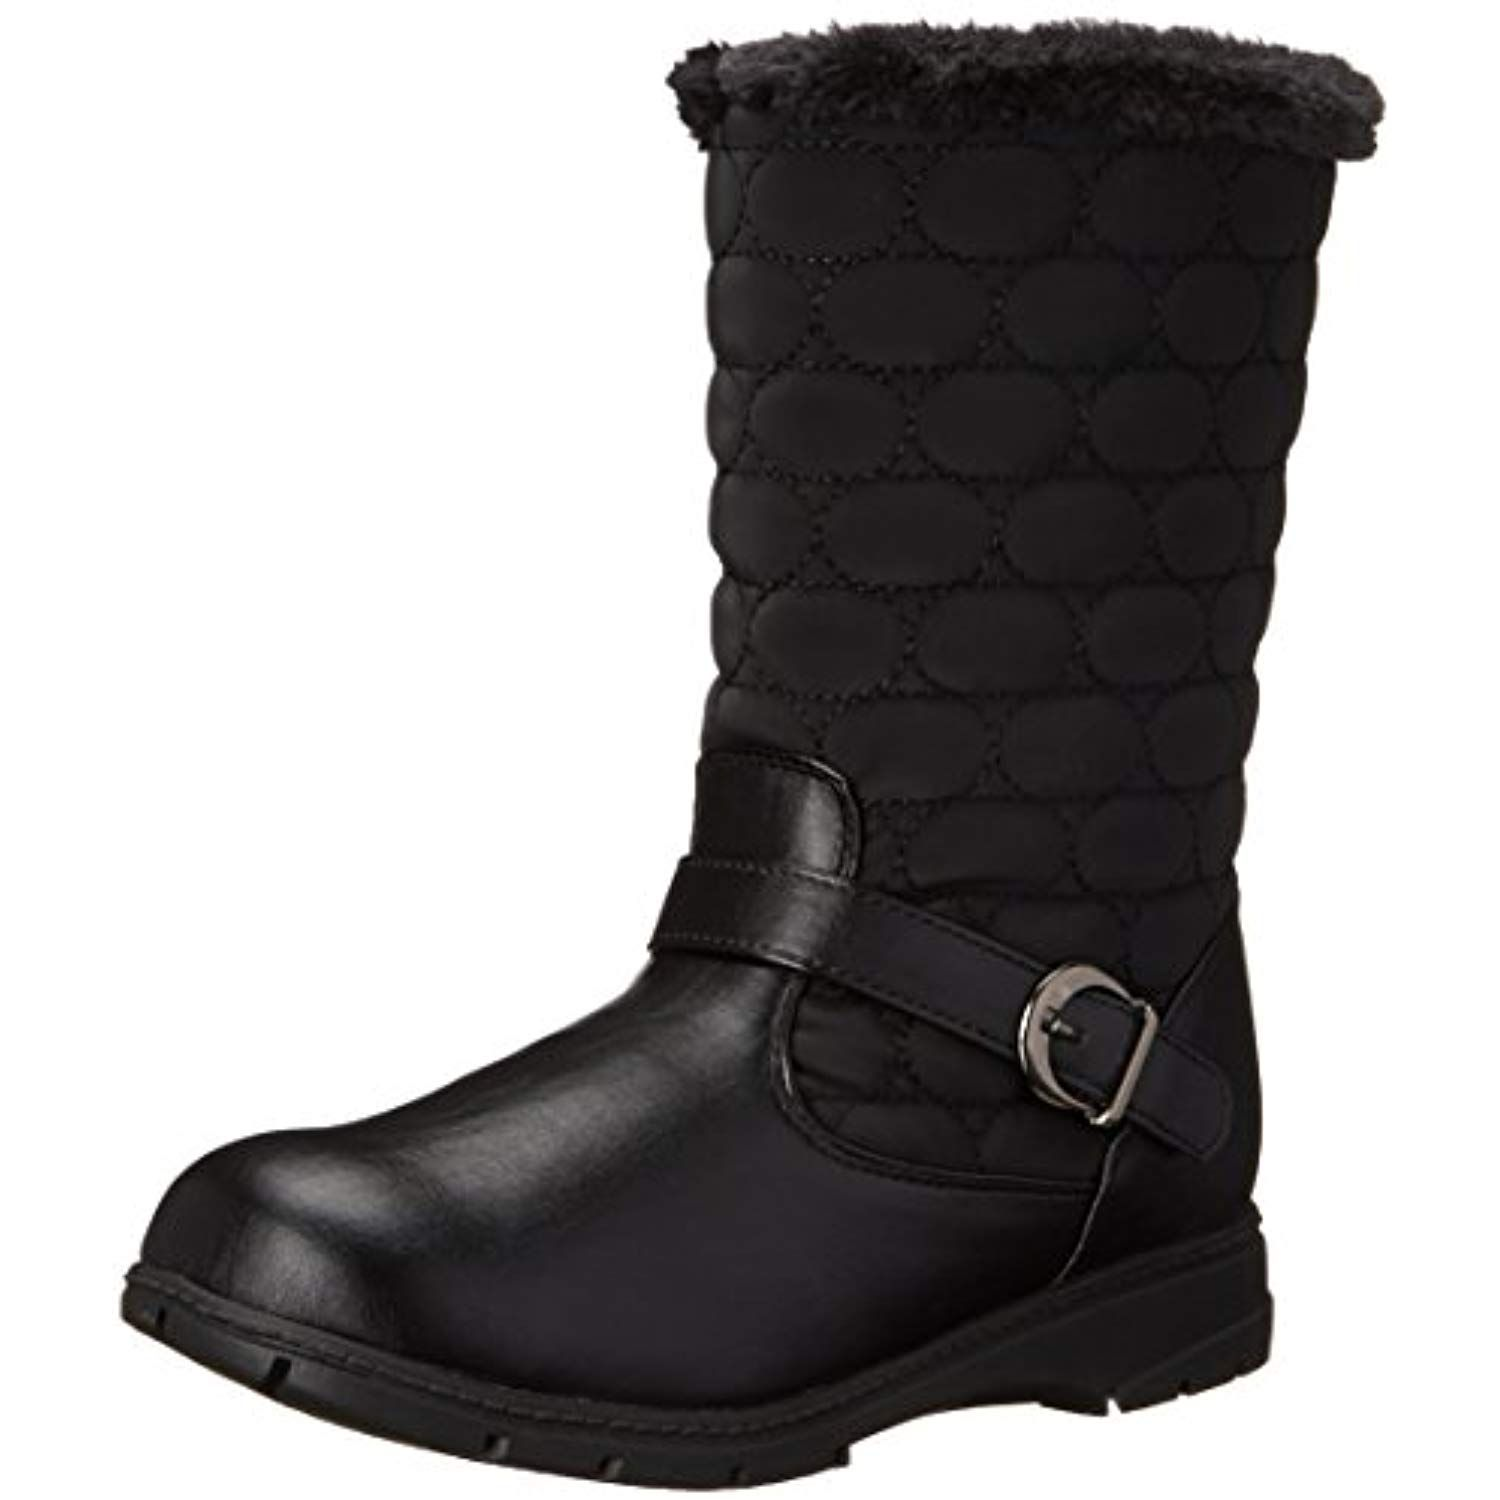 Women S Pixie Snow Boot Read More Reviews Of The Product By Visiting The Link On The Image This Is An Affi Hush Puppies Women Pixie Boots Snow Boots Women